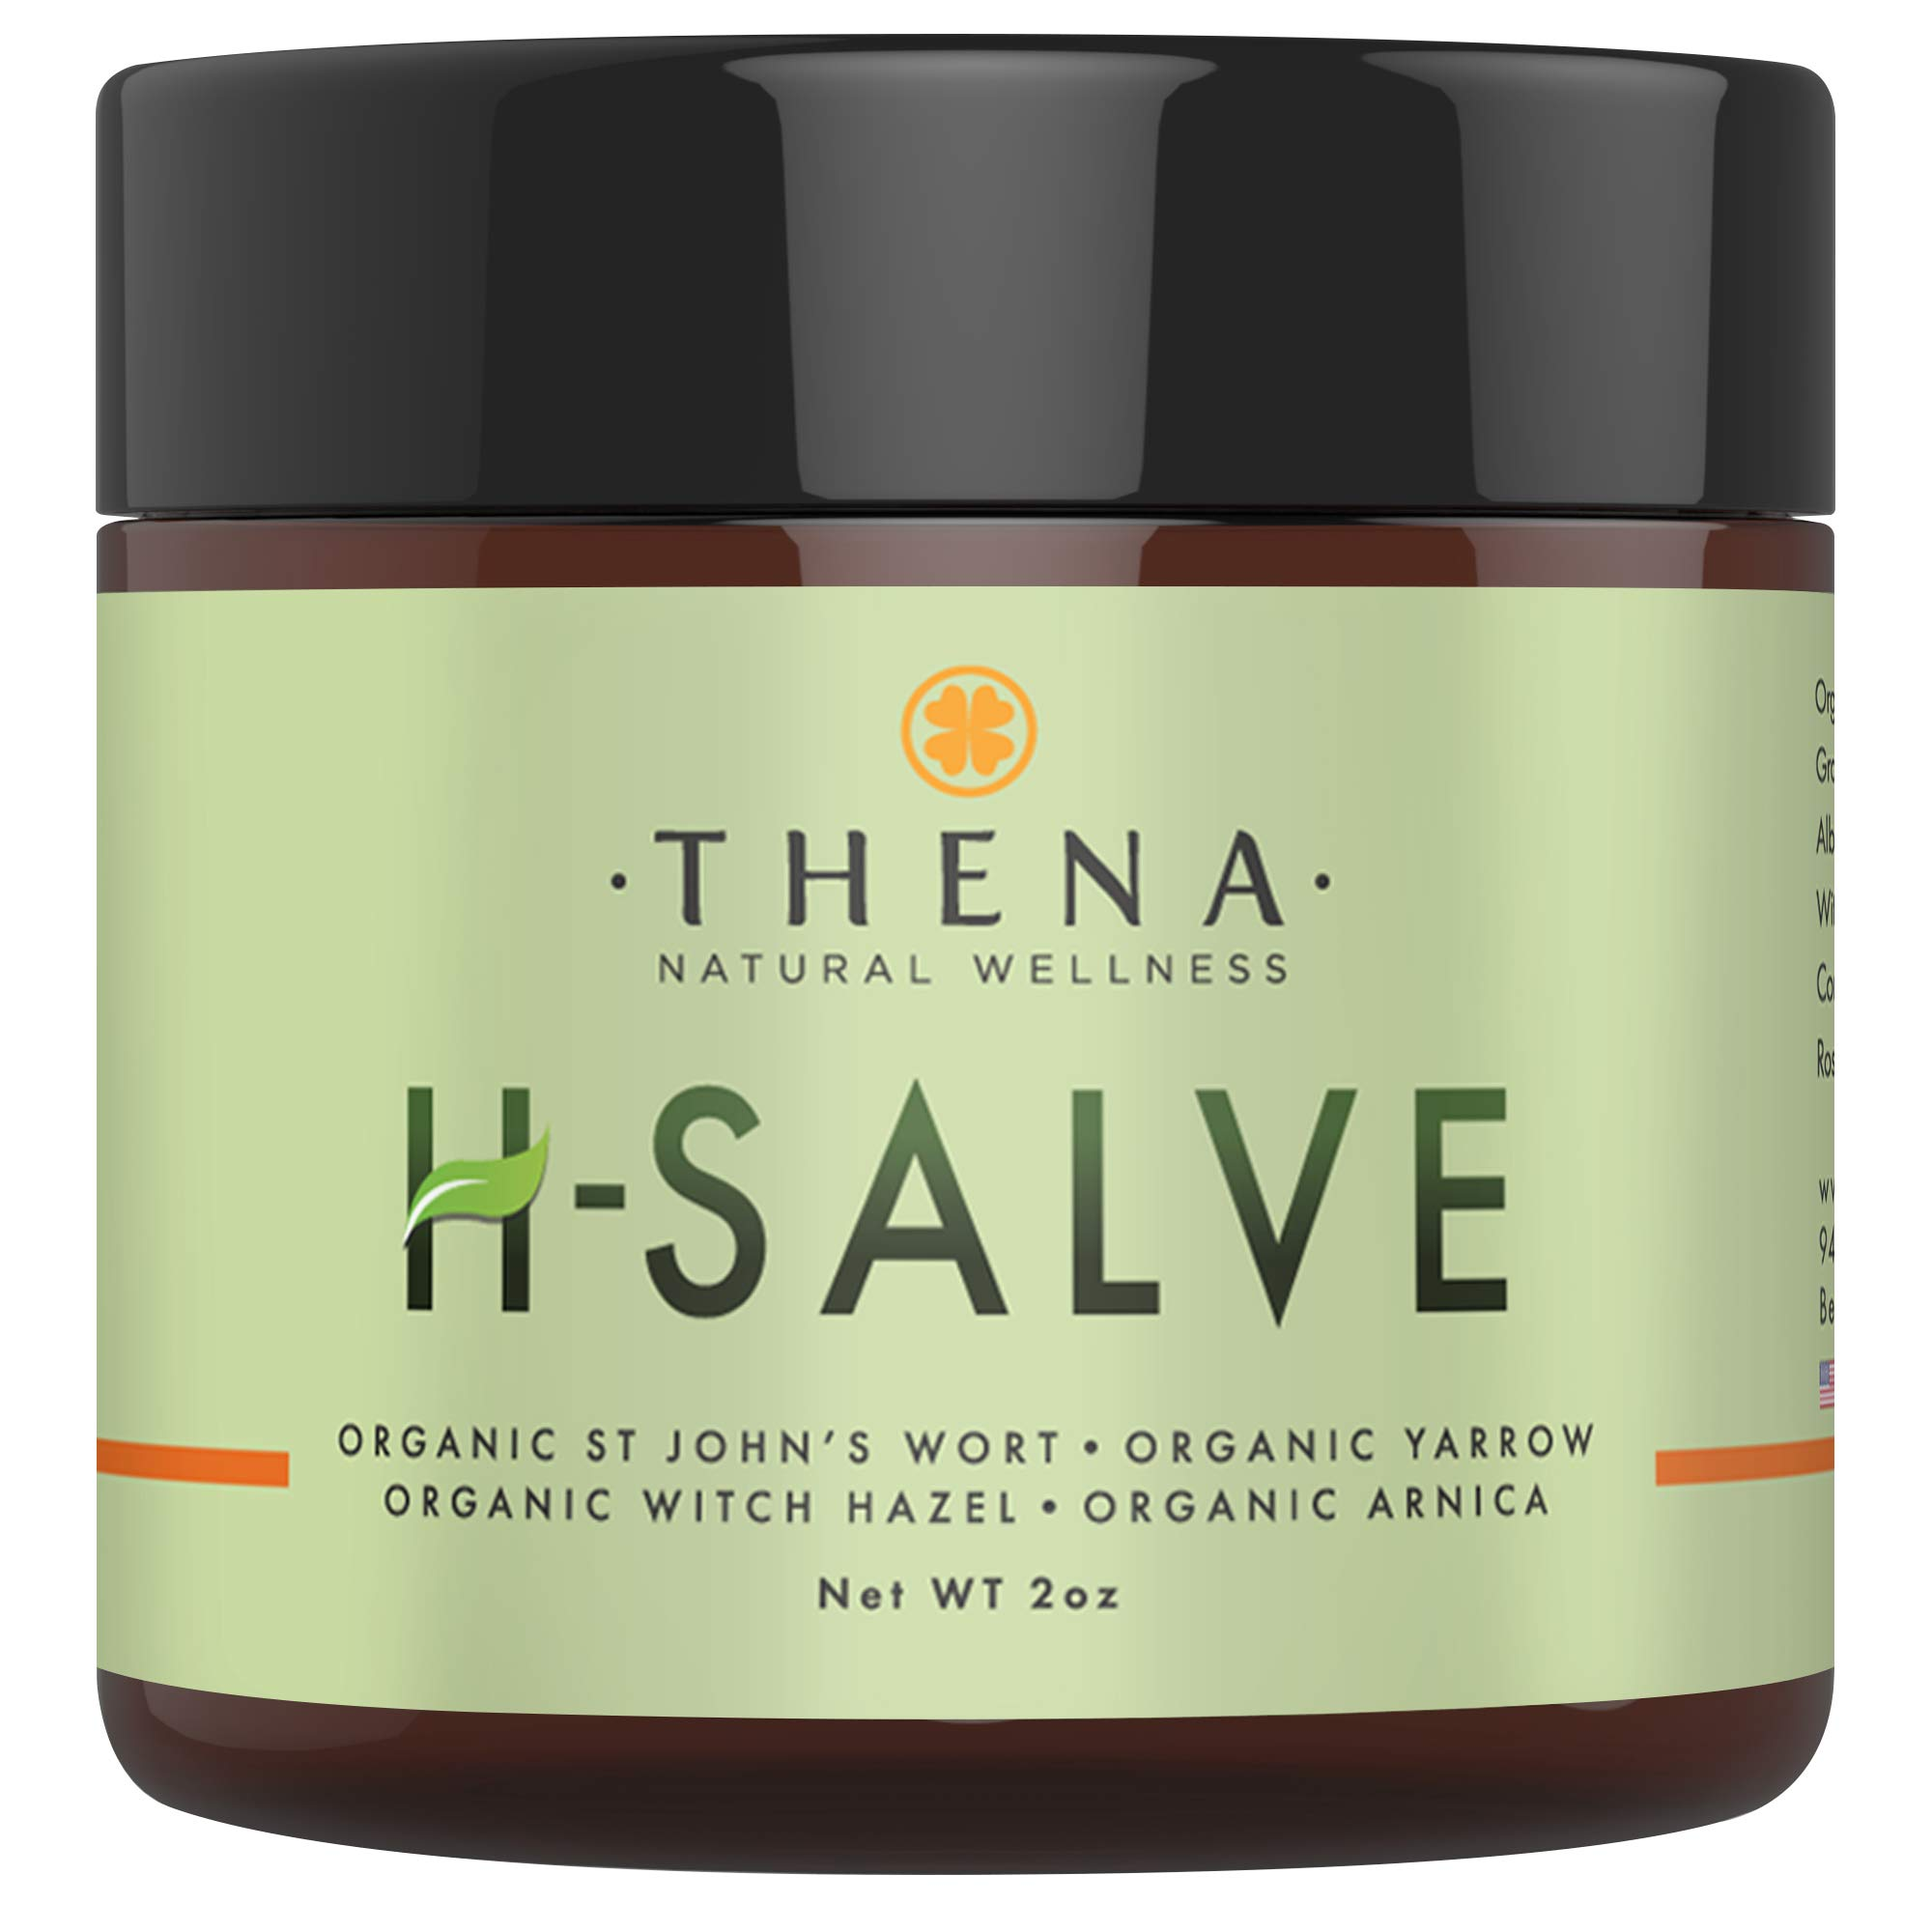 Organic H Salve Soothes & Relieves Hemmoroid & Fissure, Intense Natural Hemorrhoid Treatment Remedy, Herbal Essential Oil Healing Formula Ointment Emollient Cream Balm, Best with THENA Sitz Bath Soak by THENA Natural Wellness